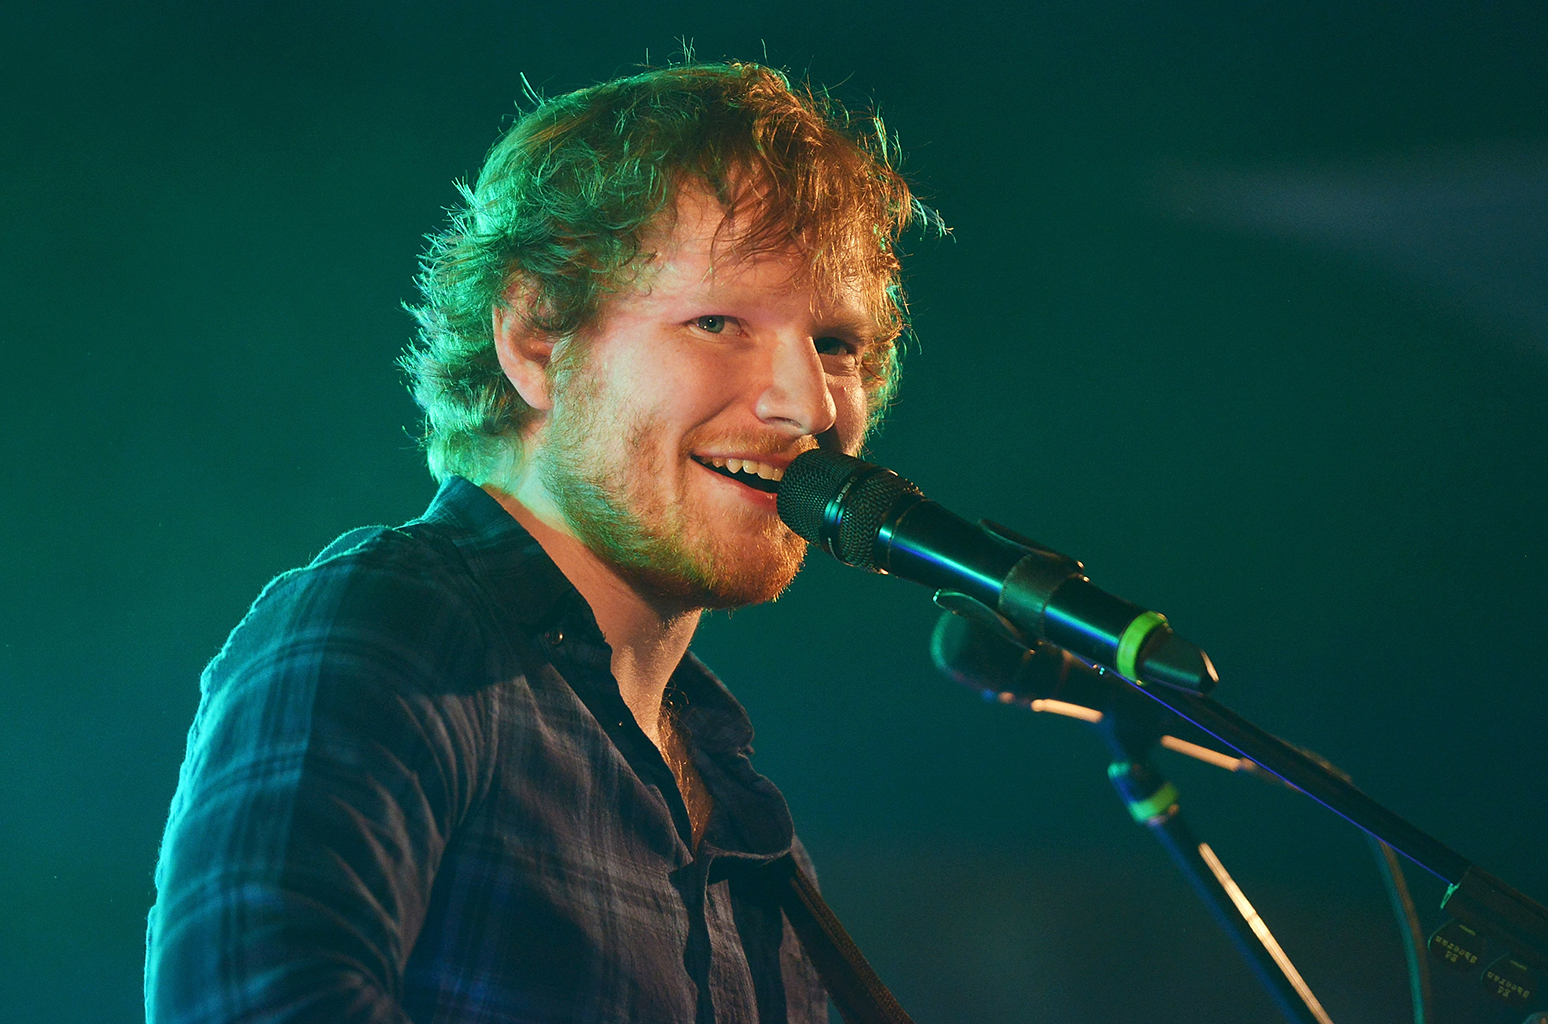 Ed Sheeran Listed Amongst UK's Top 40 Richest Musicians